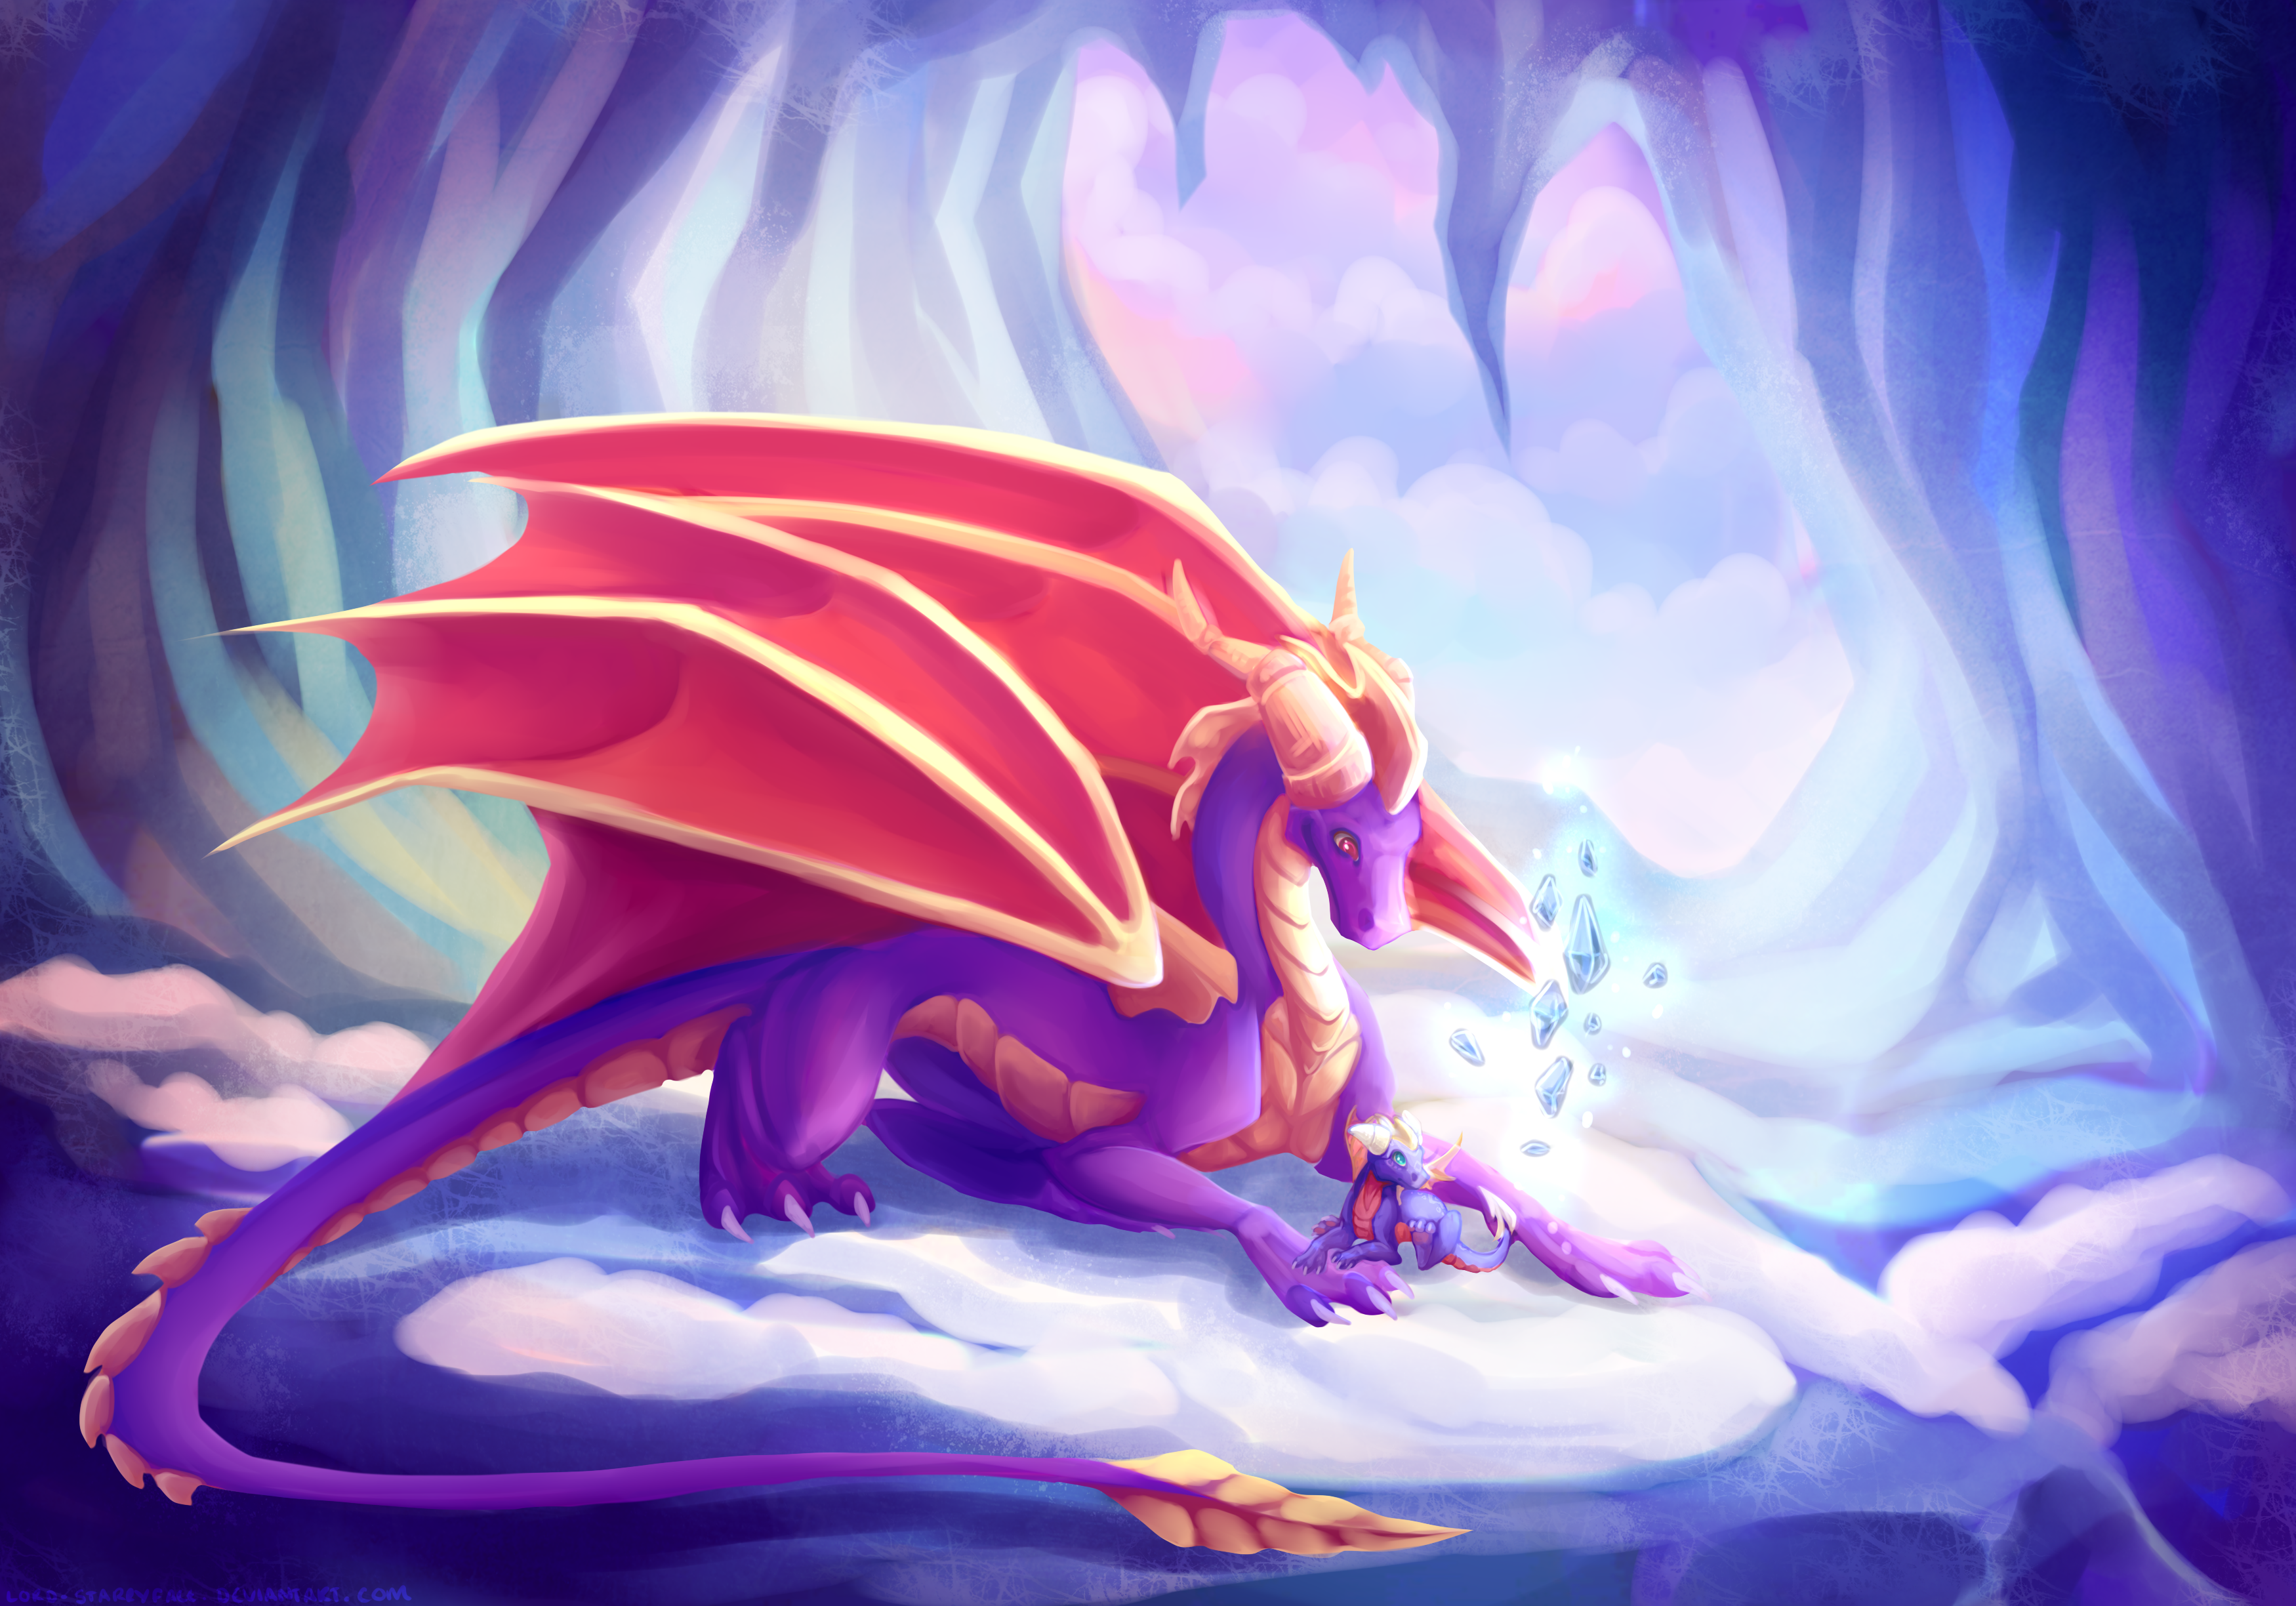 78 Spyro The Dragon Hd Wallpapers Background Images Wallpaper